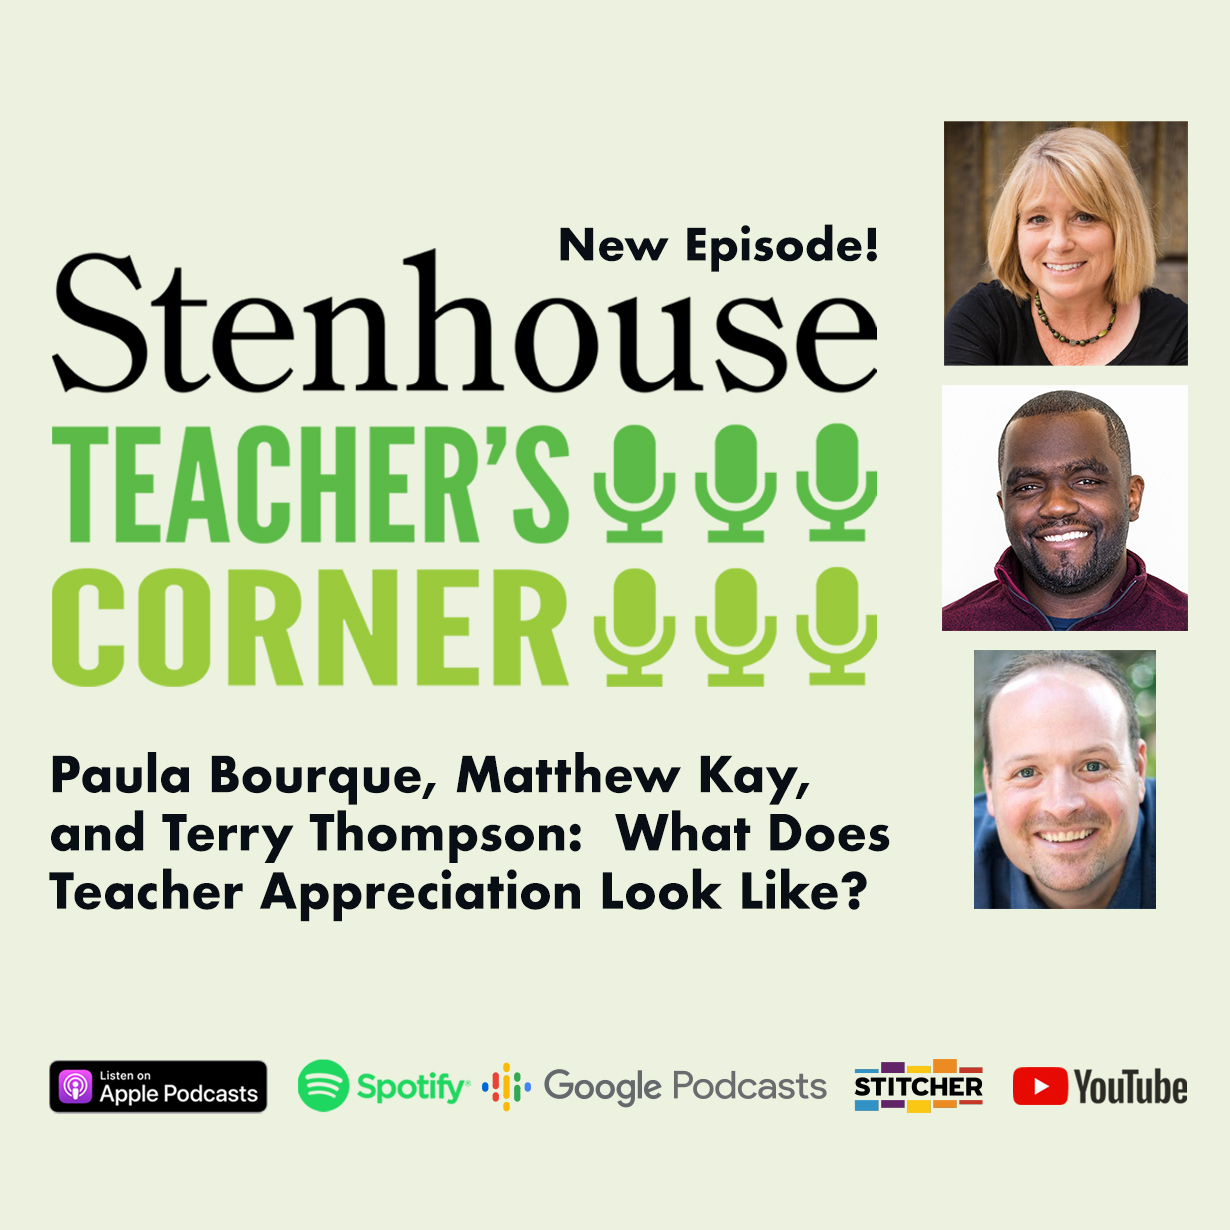 Teacher's Corner Podcast: What Does Teacher Appreciation Look Like?